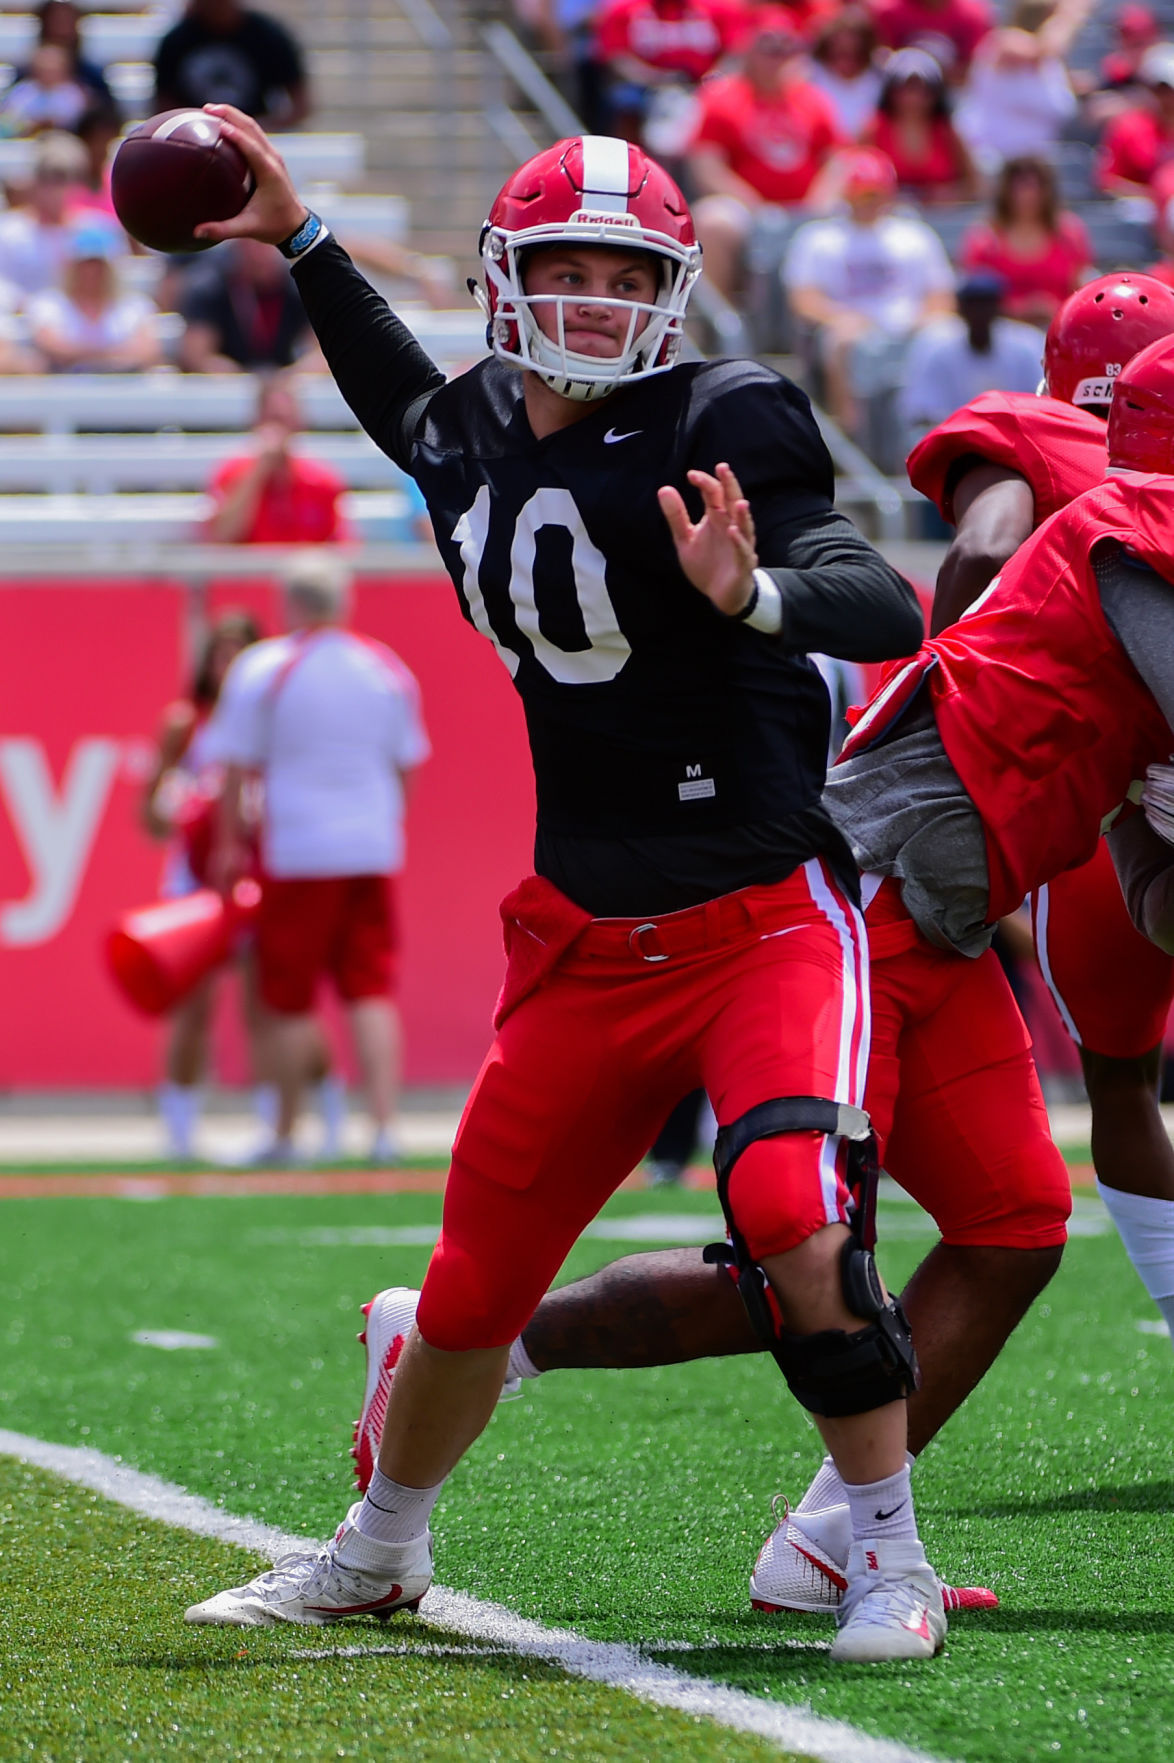 COLLEGE FOOTBALL: APR 15 Houston Spring Game